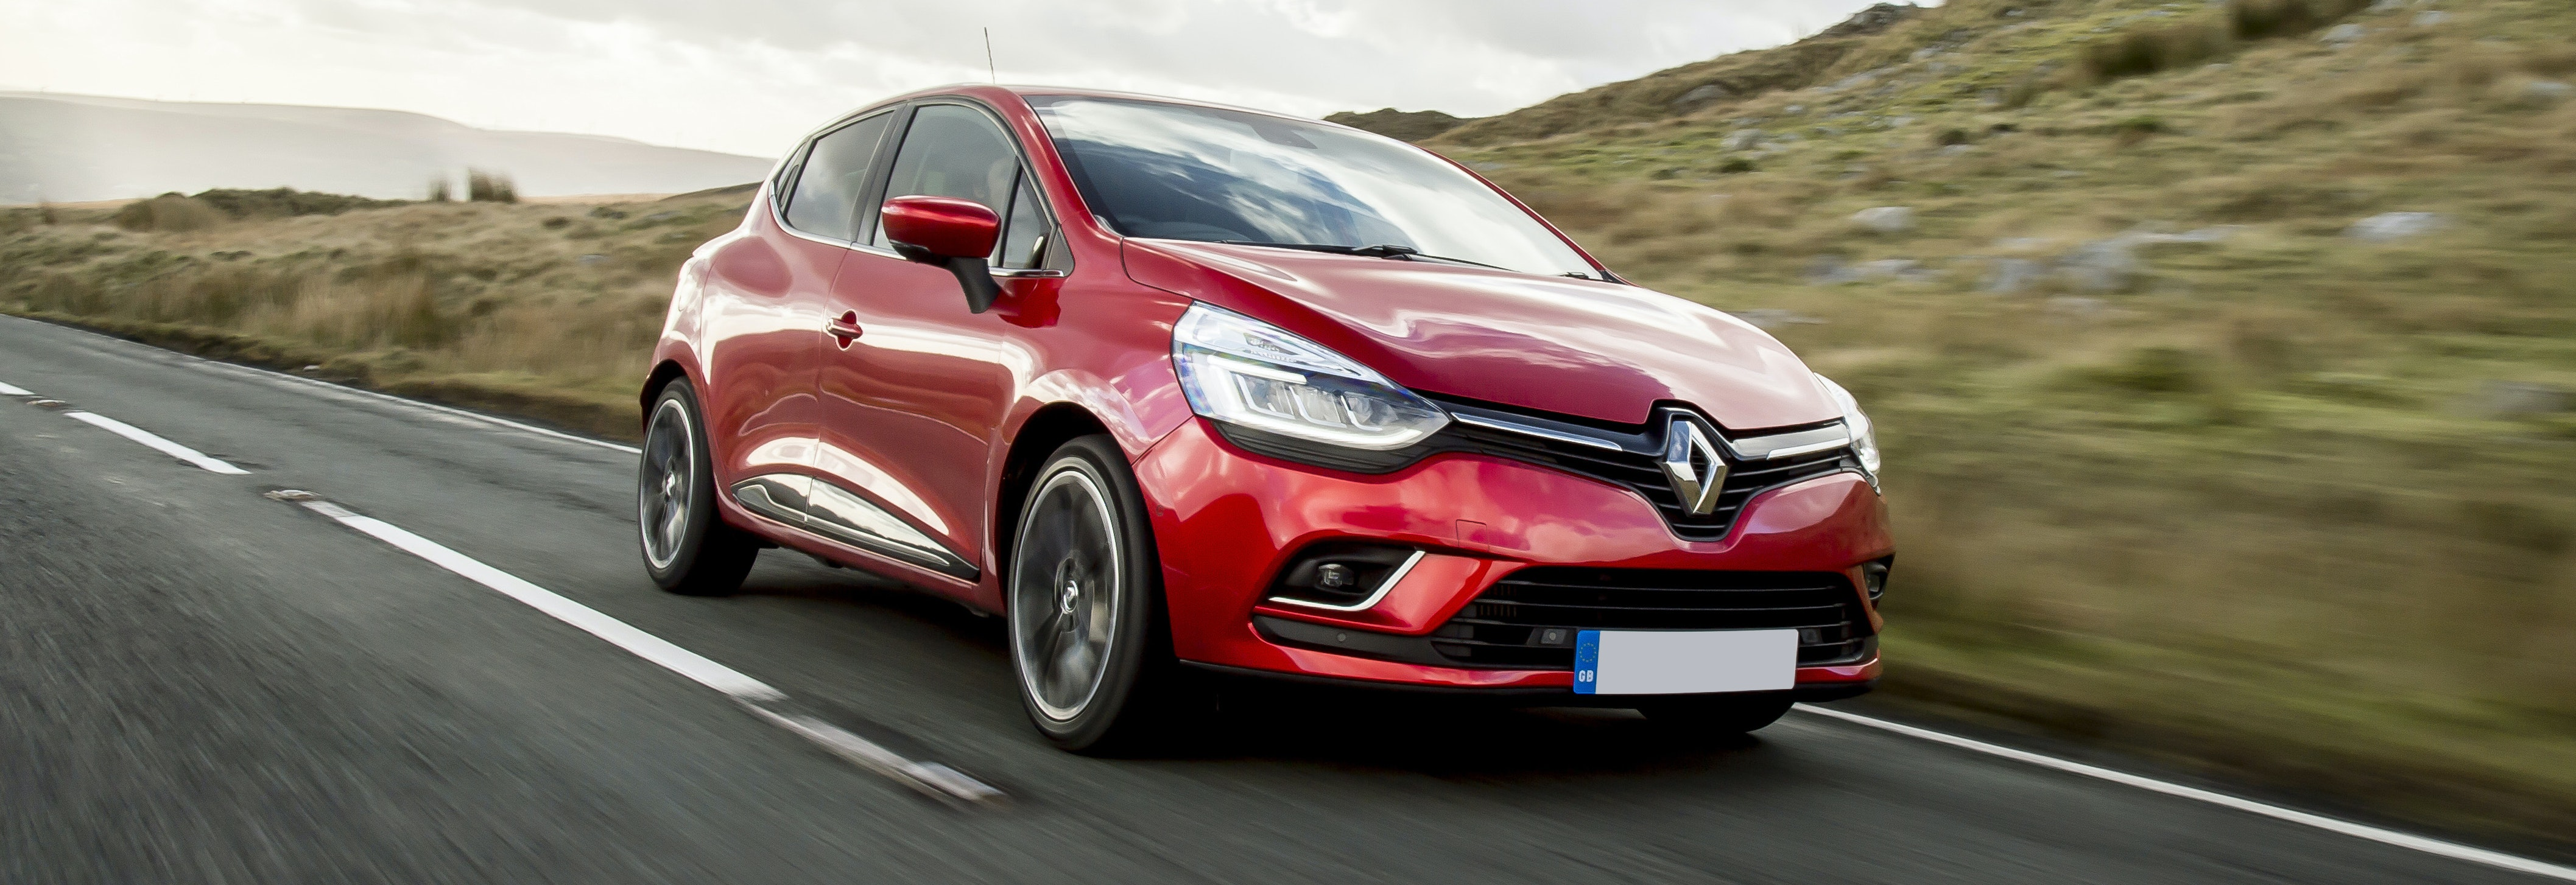 renault clio red driving front